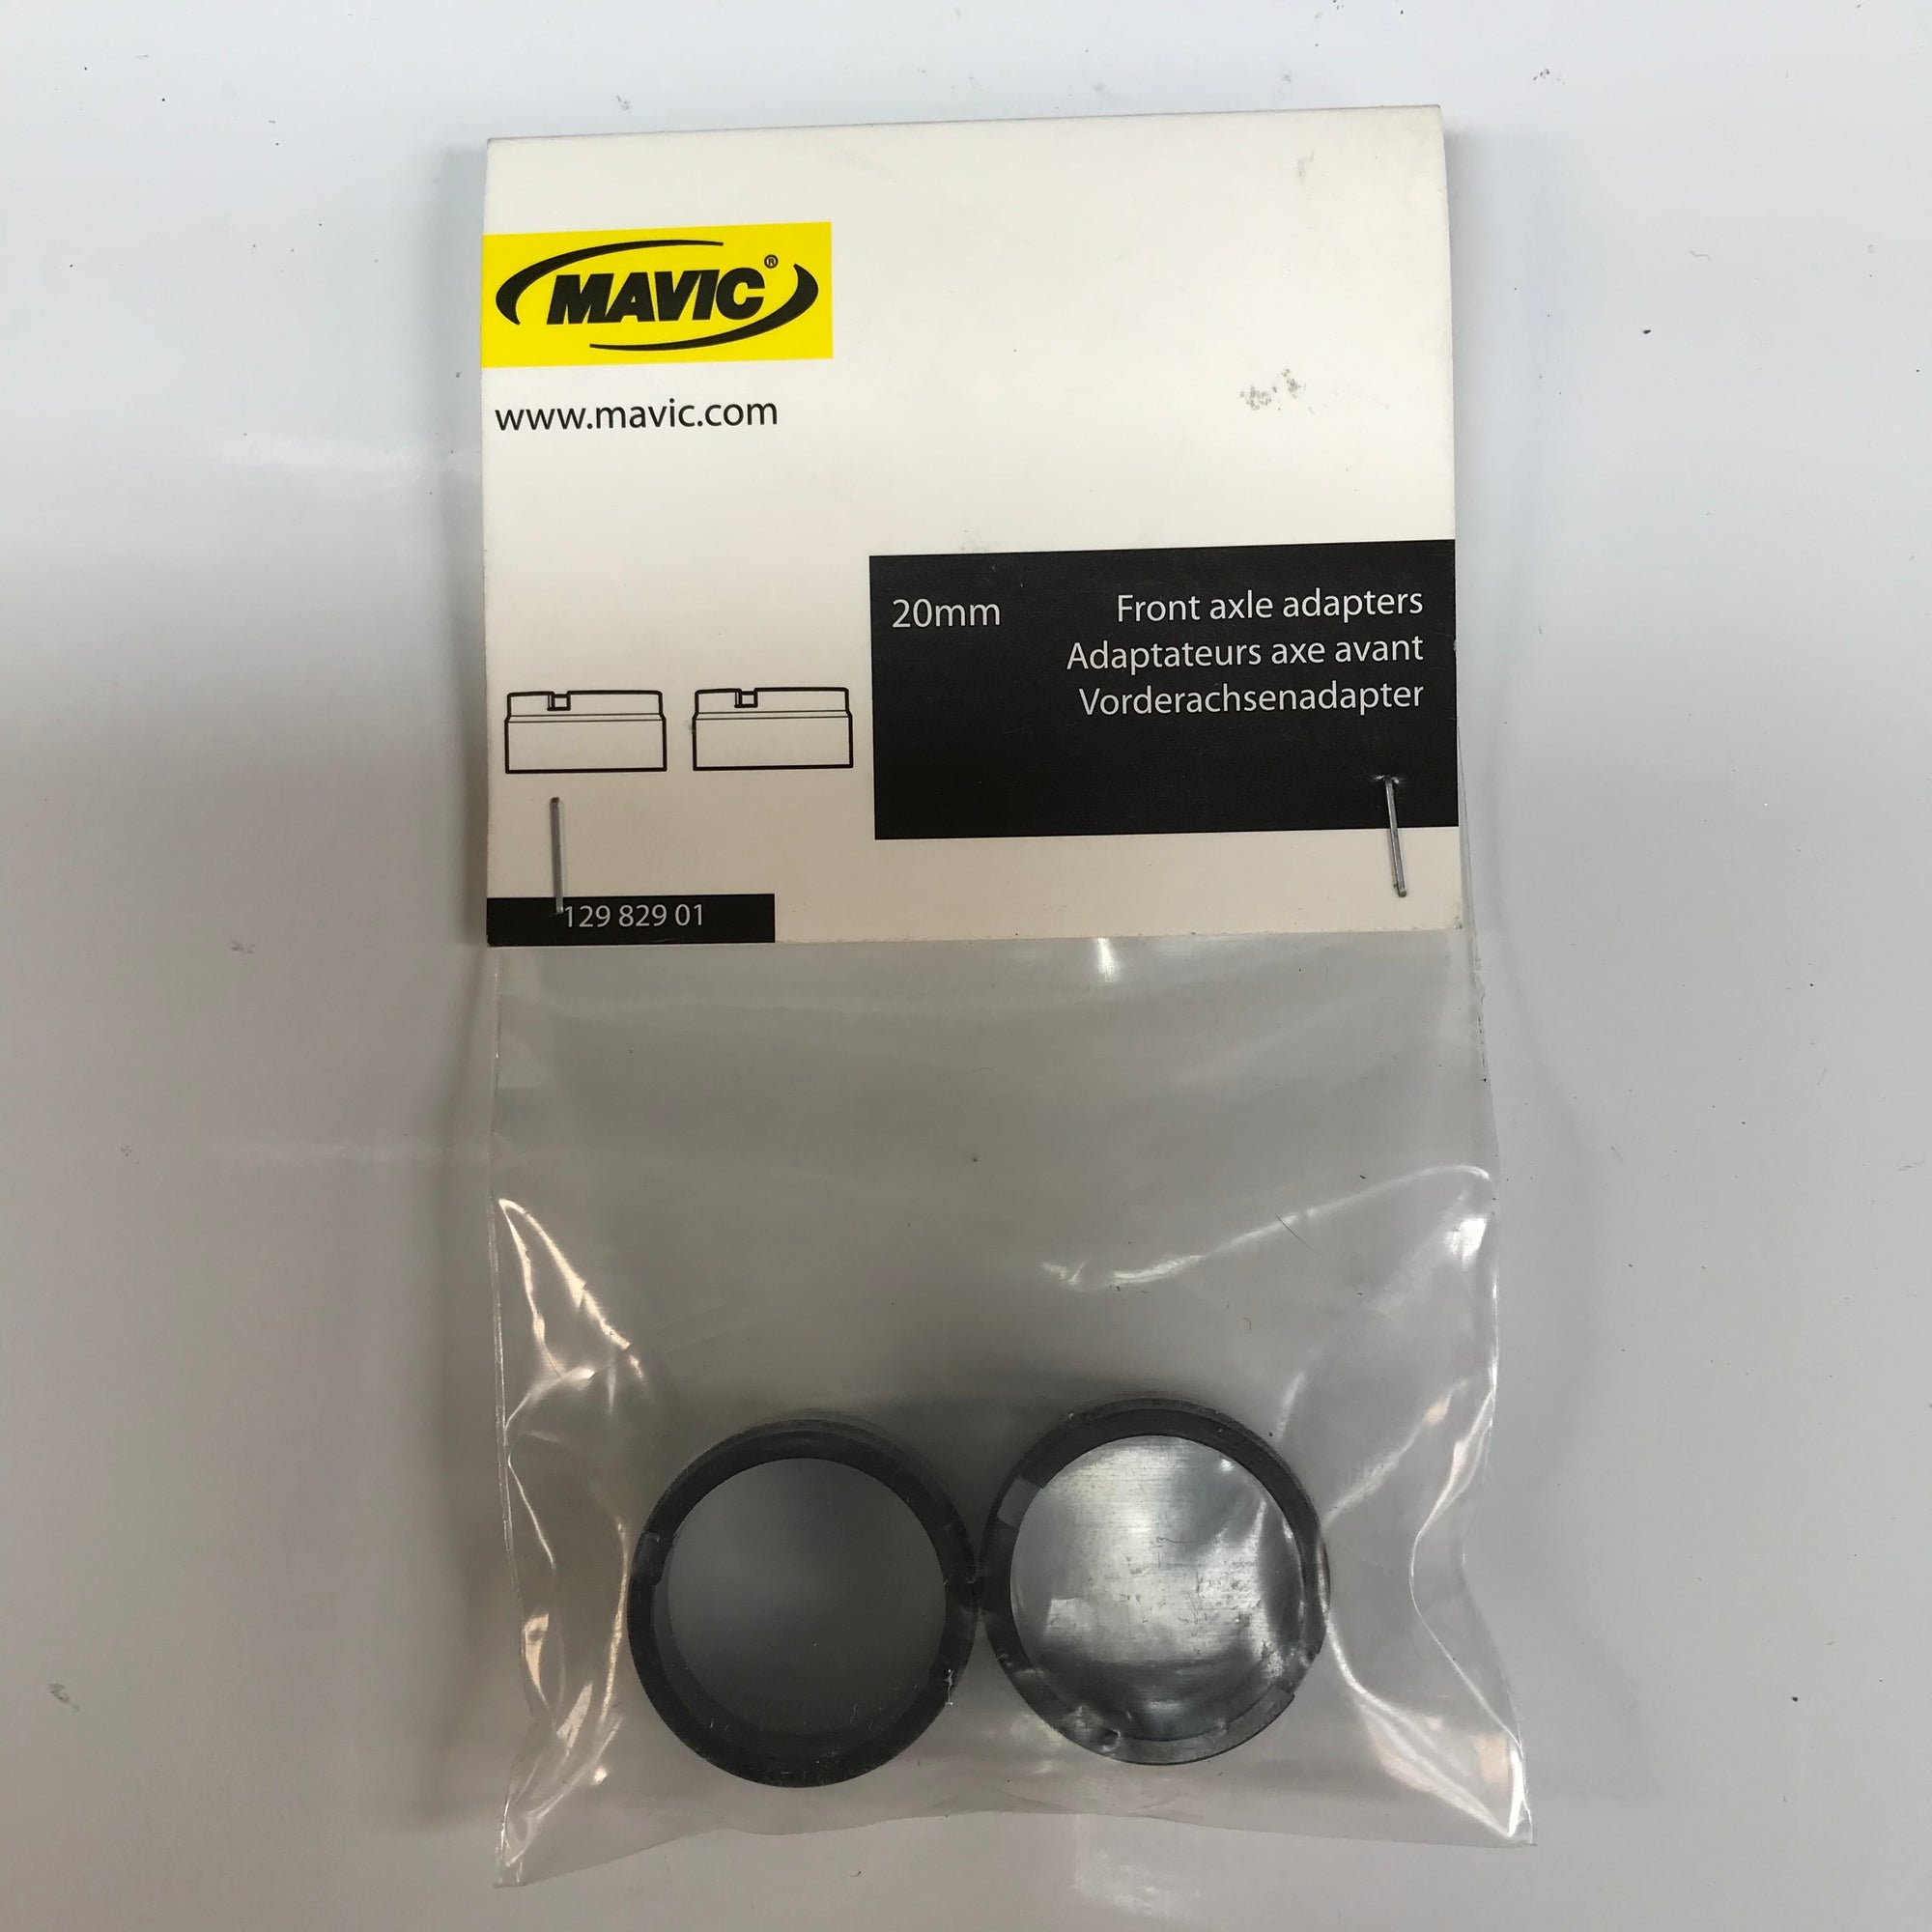 Mavic 20mm Front Axle Adapters 12982901